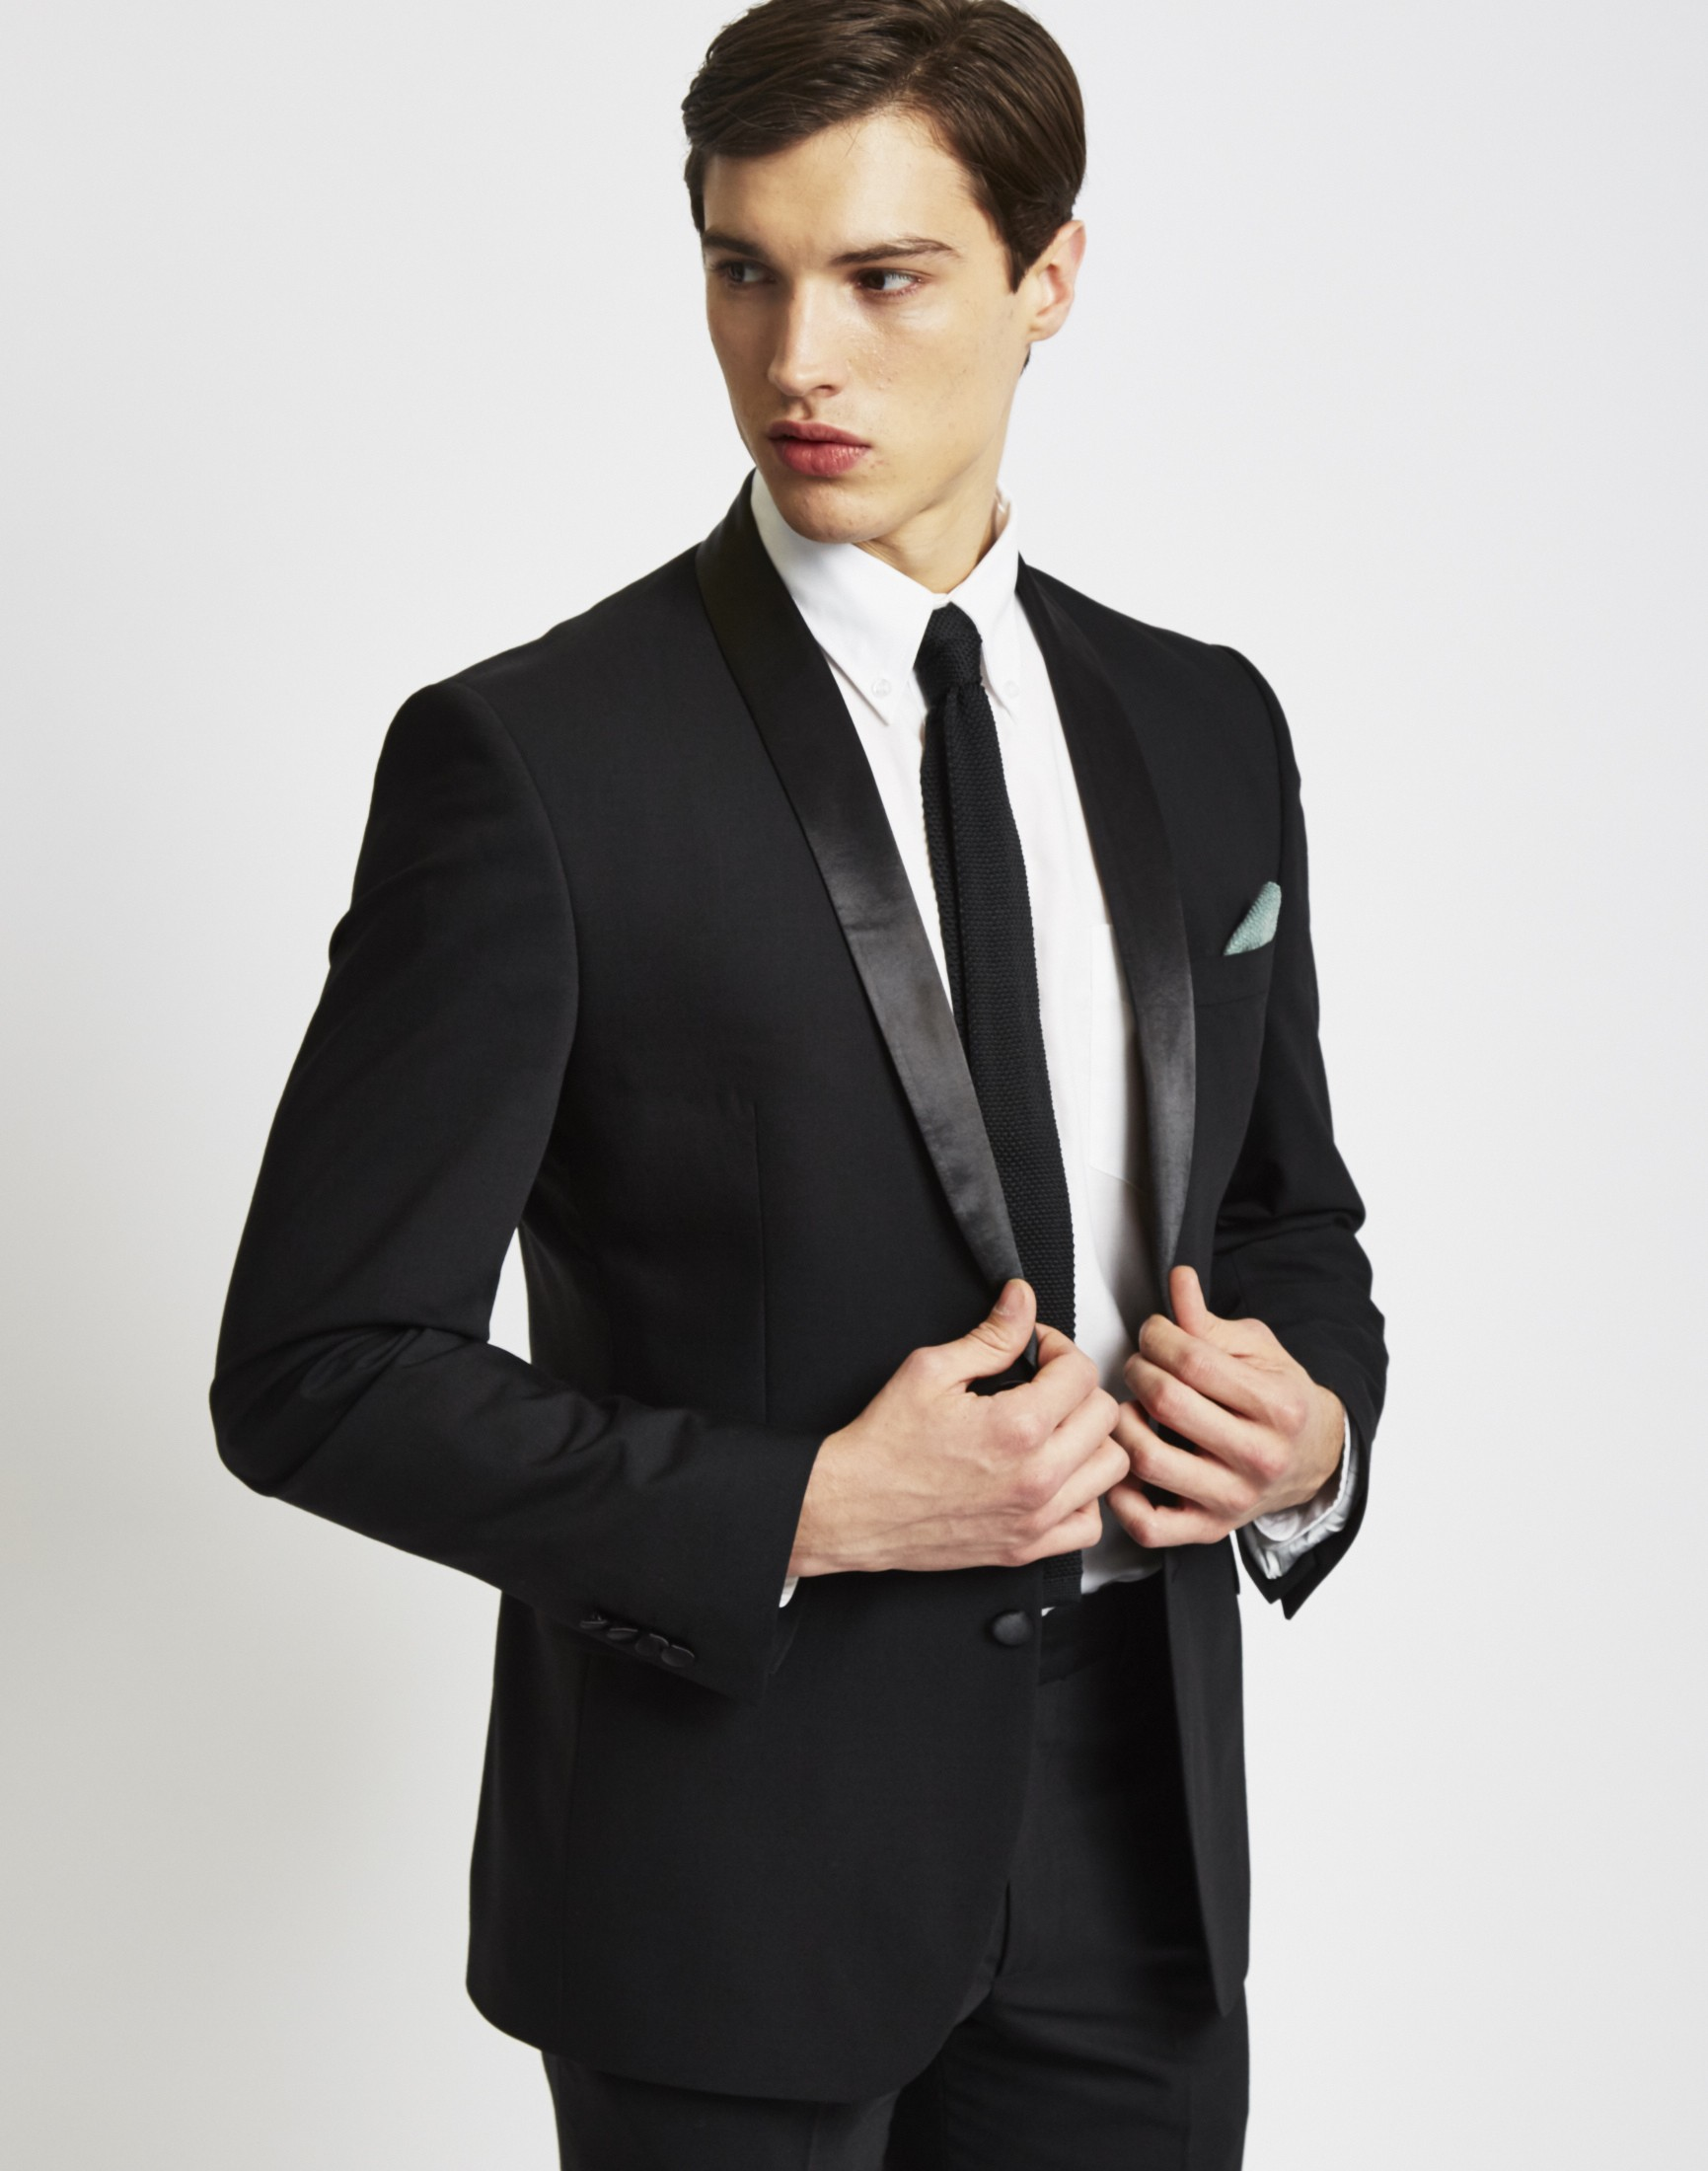 The Idle Man Tuxedo Jacket in Slim Fit at The Idle Man